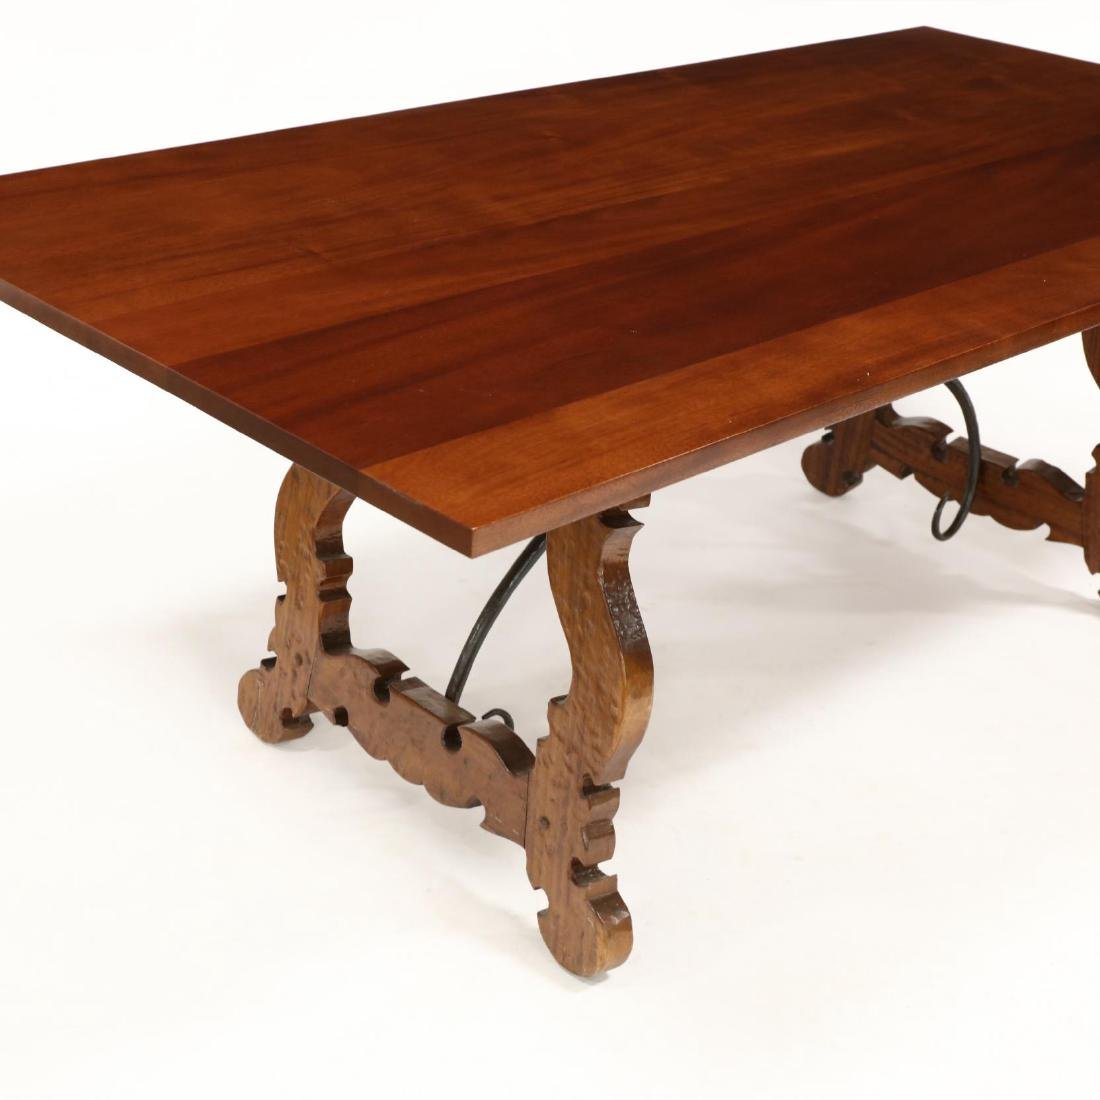 Spanish Style Carved Trestle Base Dining Table - 2